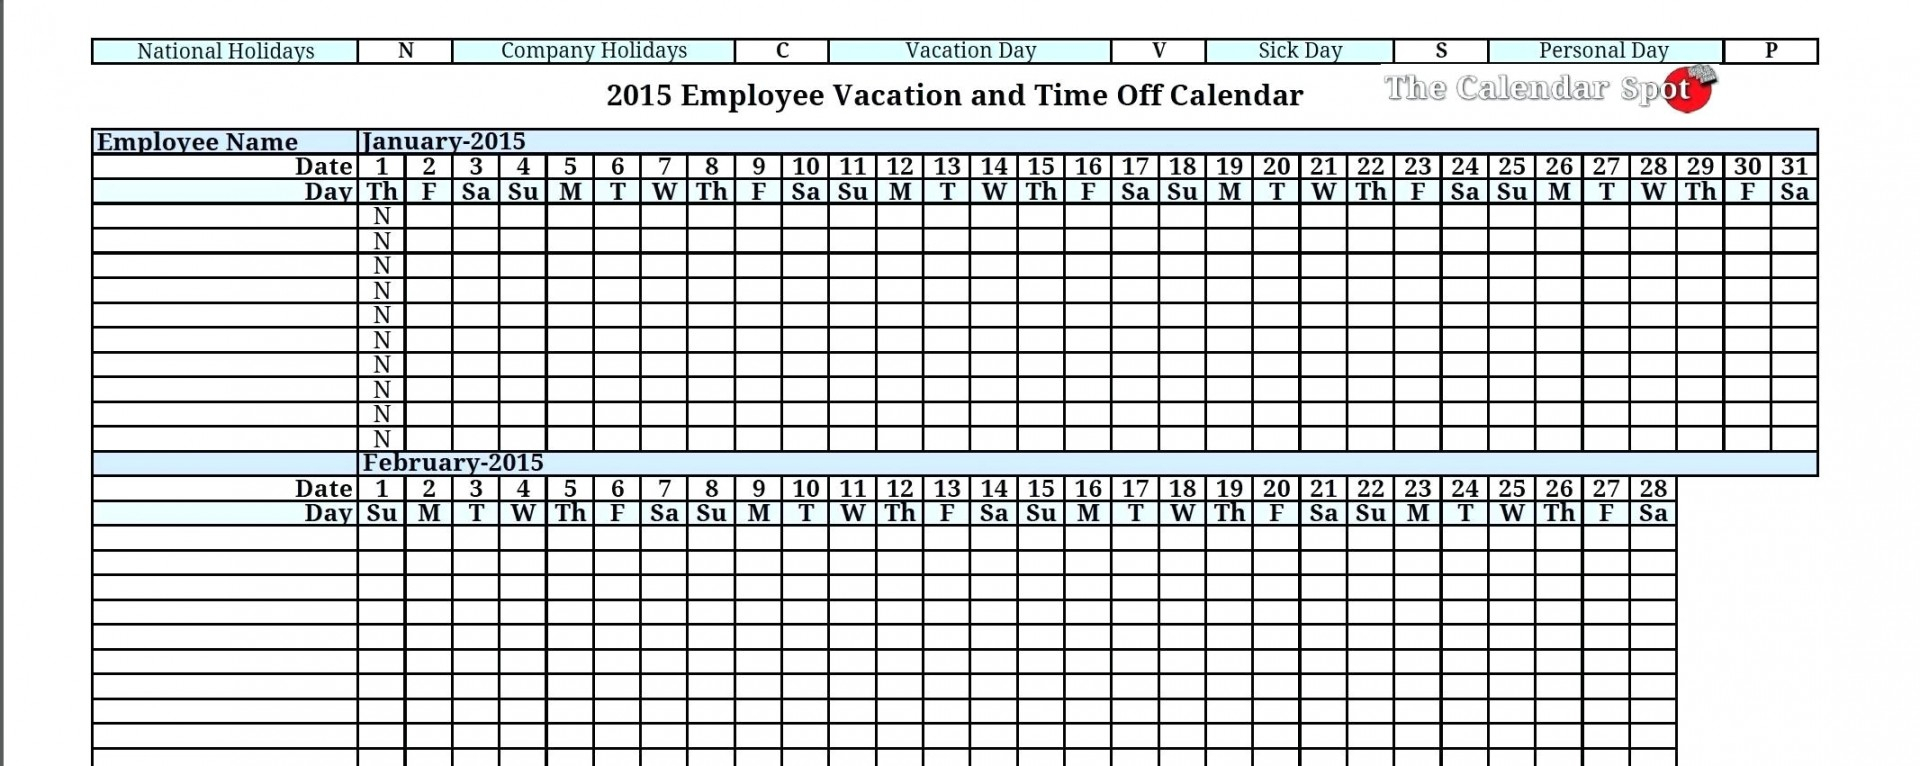 Free Holiday Spreadsheet For 023 Template Ideas Employee Vacation Planner Accrual Spreadsheet